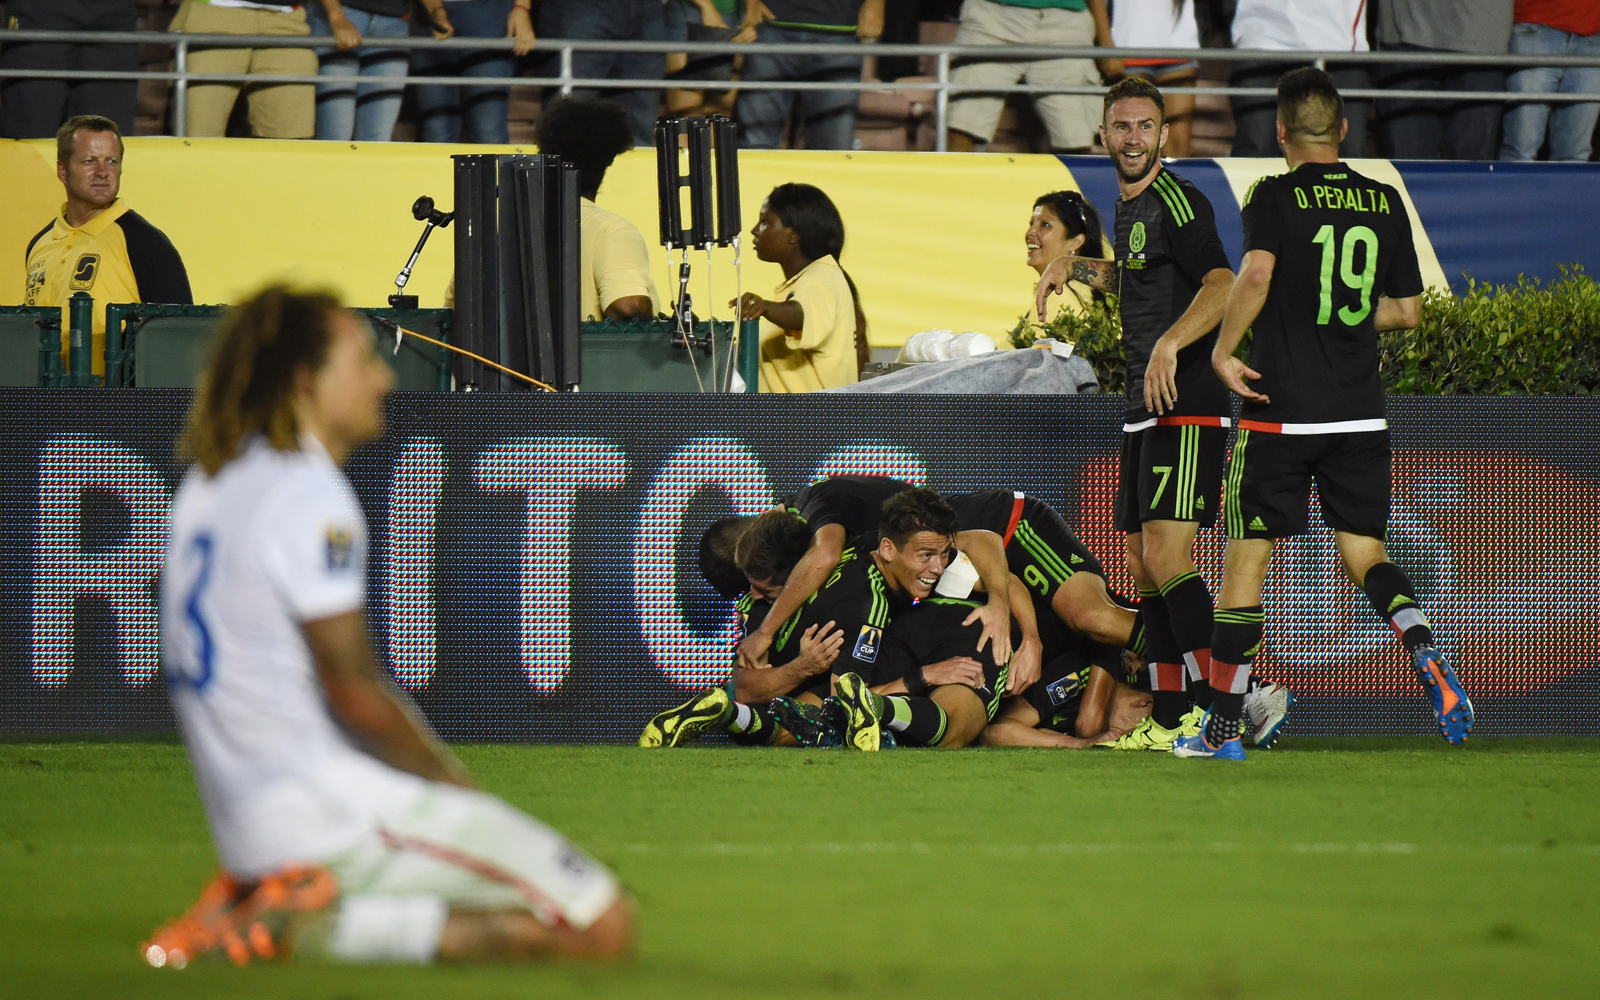 Jermaine Jones falls to his knees in disappointment as Mexico celebrates after Paul Aguilar's sensational volley in extra time captured the CONCACAF Cup for El Tri and sends the U.S. rival to the 2017 FIFA Confederations Cup.